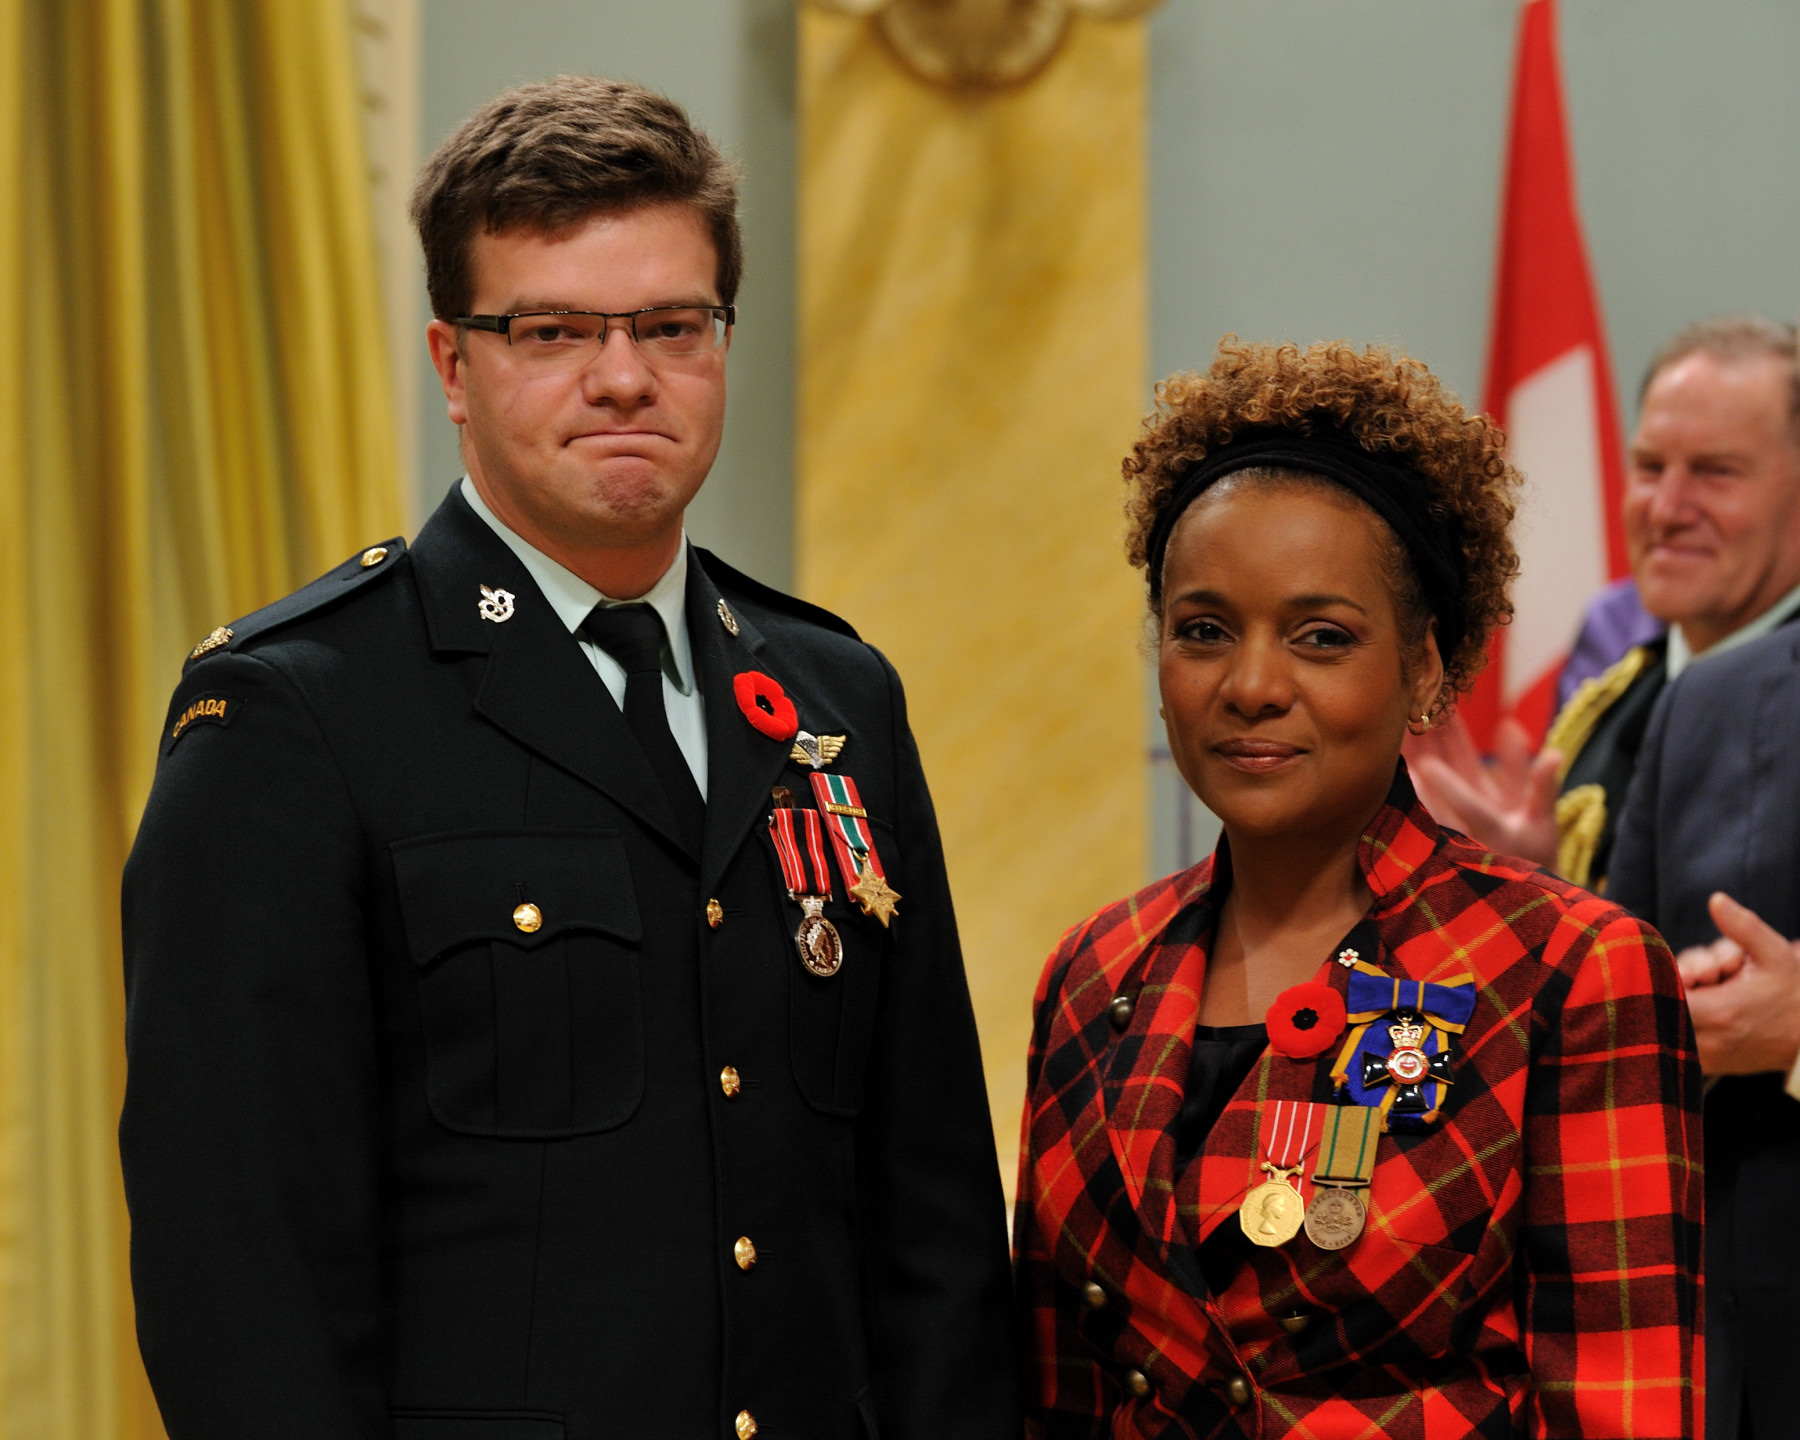 Her Excellency the Right Honourable Michaëlle Jean, Commander-in-Chief of Canada, presented the Sacrifice Medal to Captain Simon Jean Mailloux.